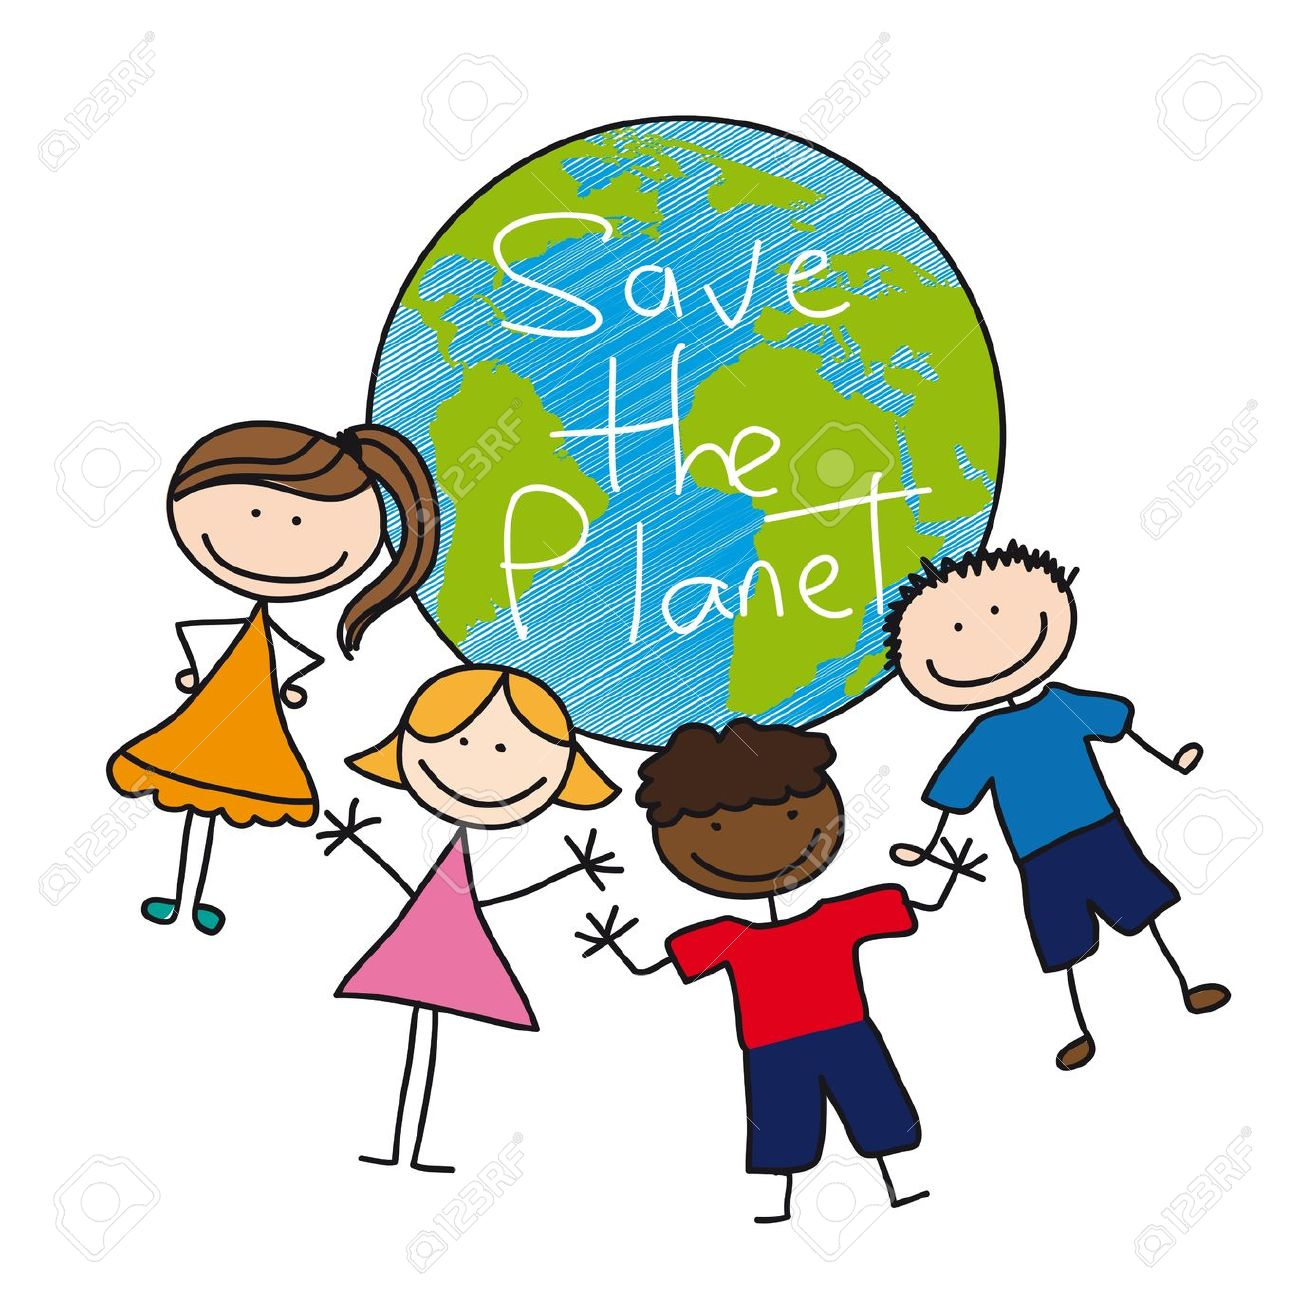 Save energy save environment clipart svg free library Clipart on save energy save environment - ClipartFest svg free library